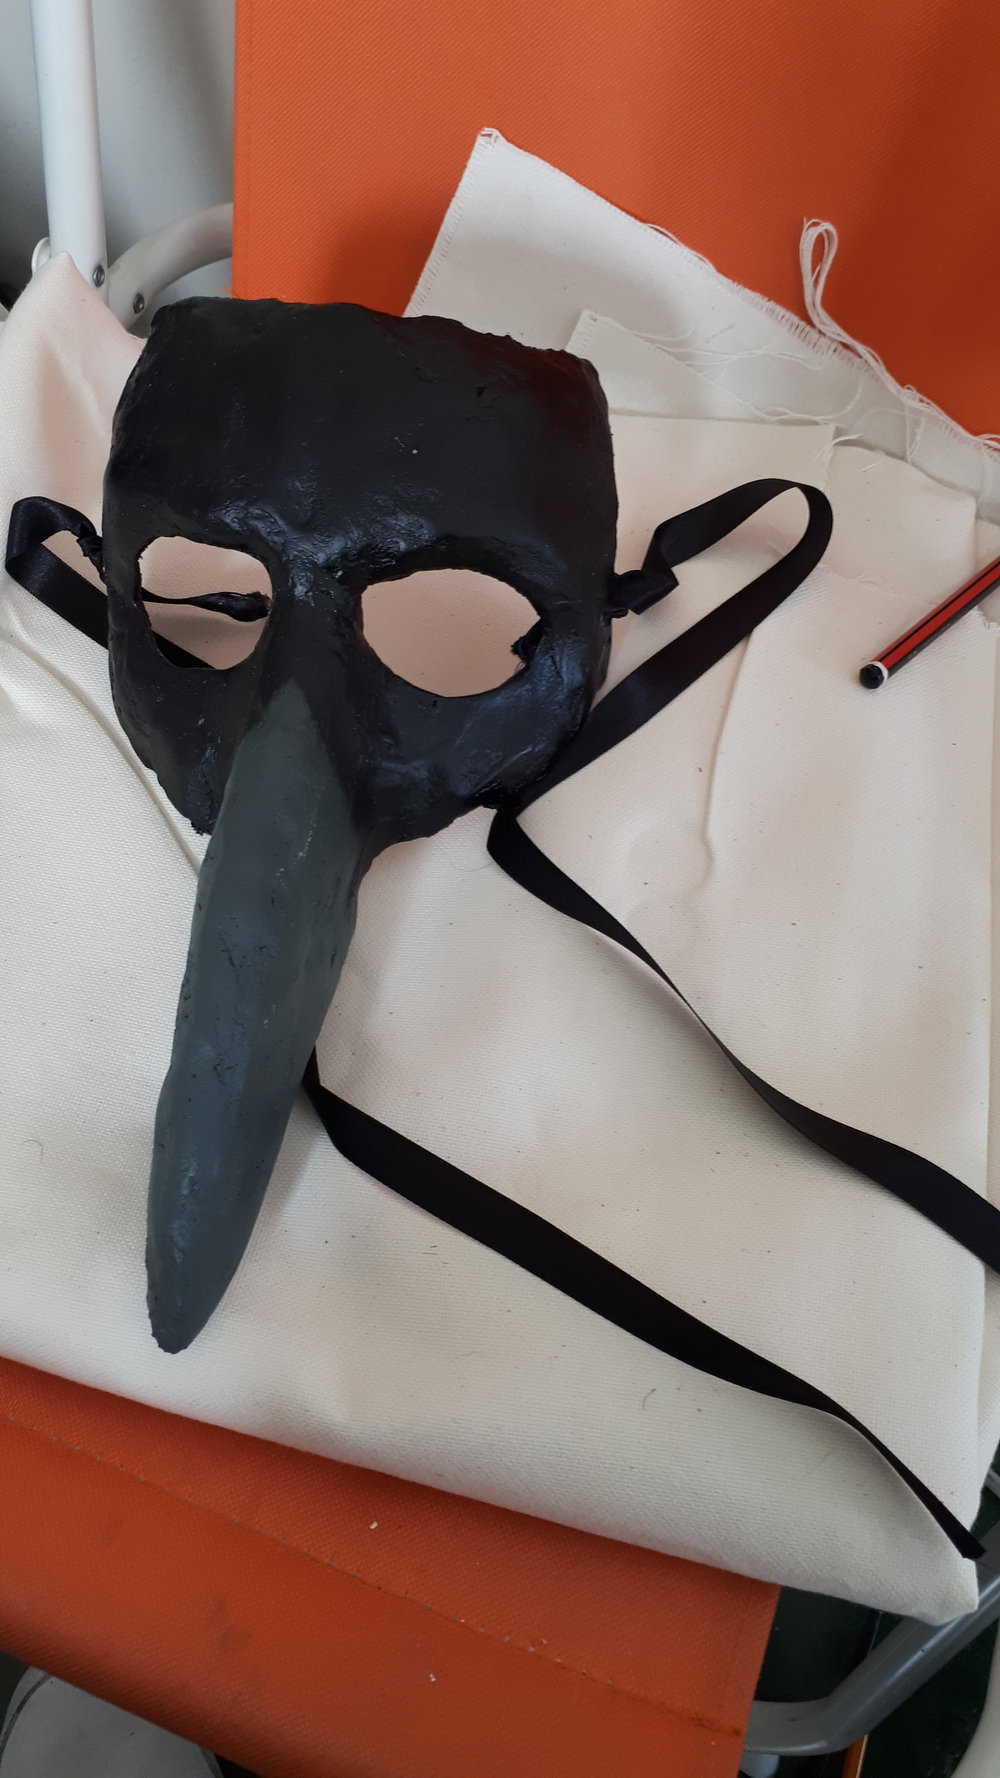 The Sluagh mask made from plaster bandage